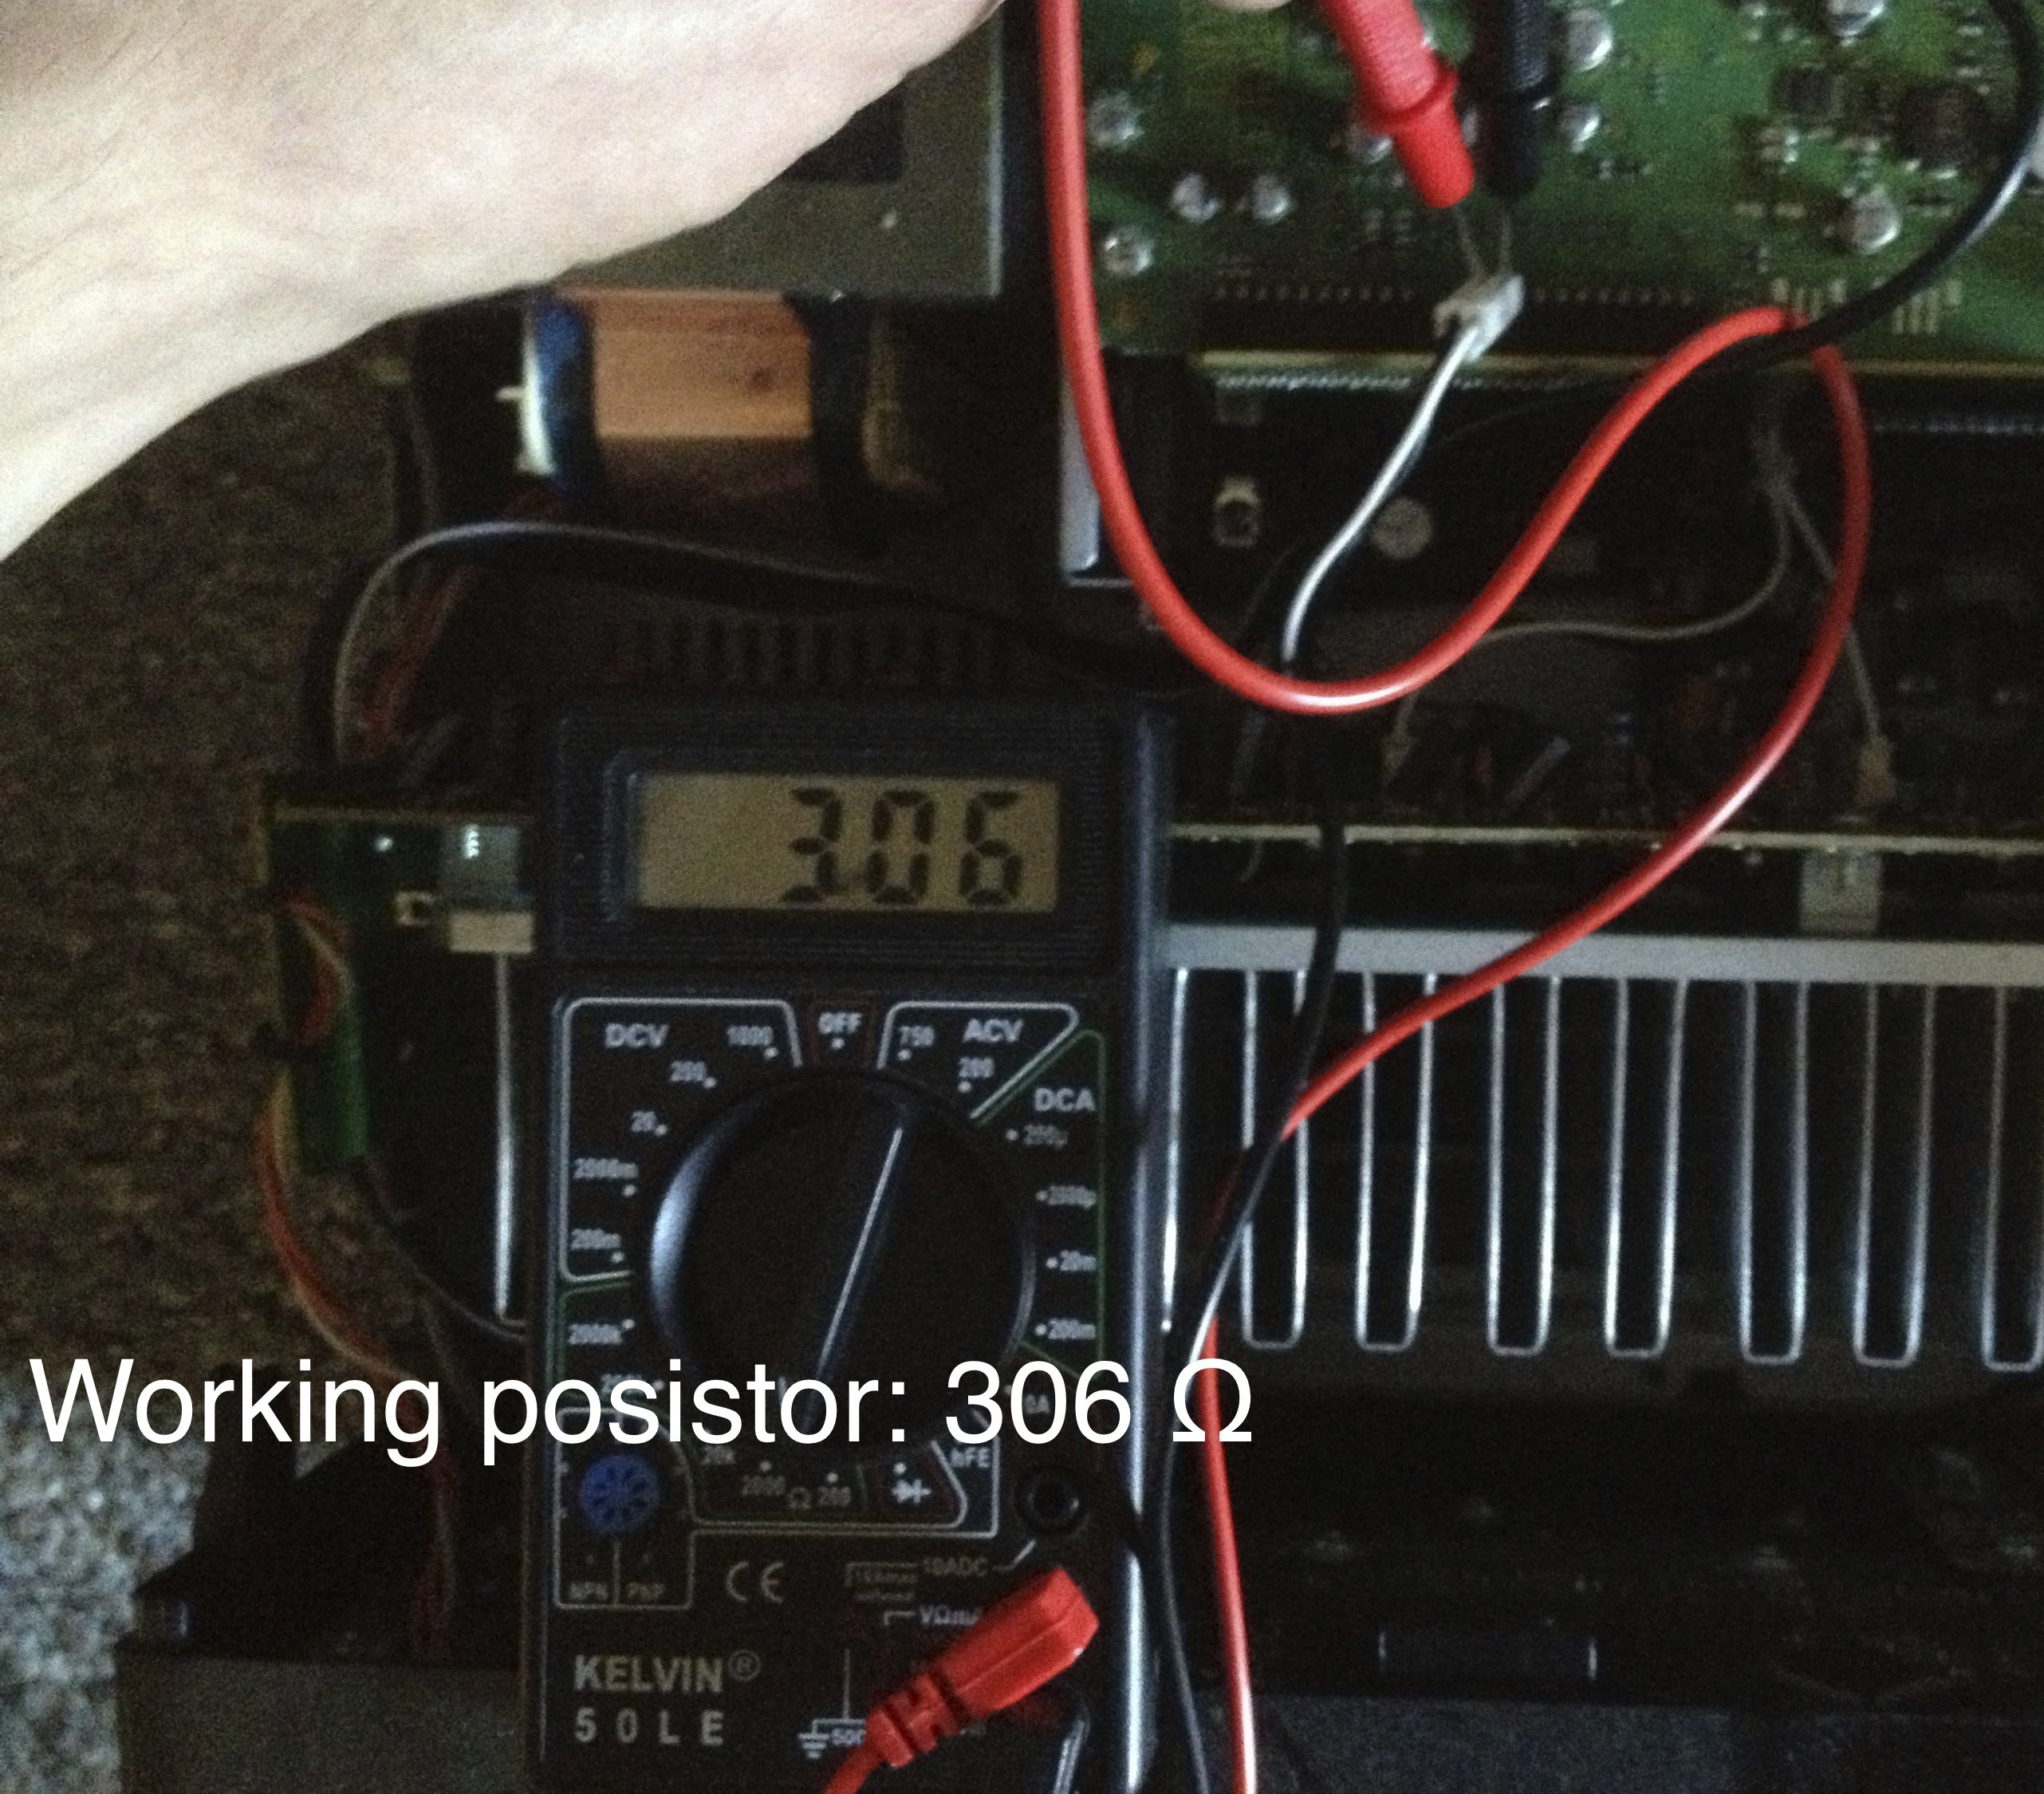 Working posistor: 306 ohm